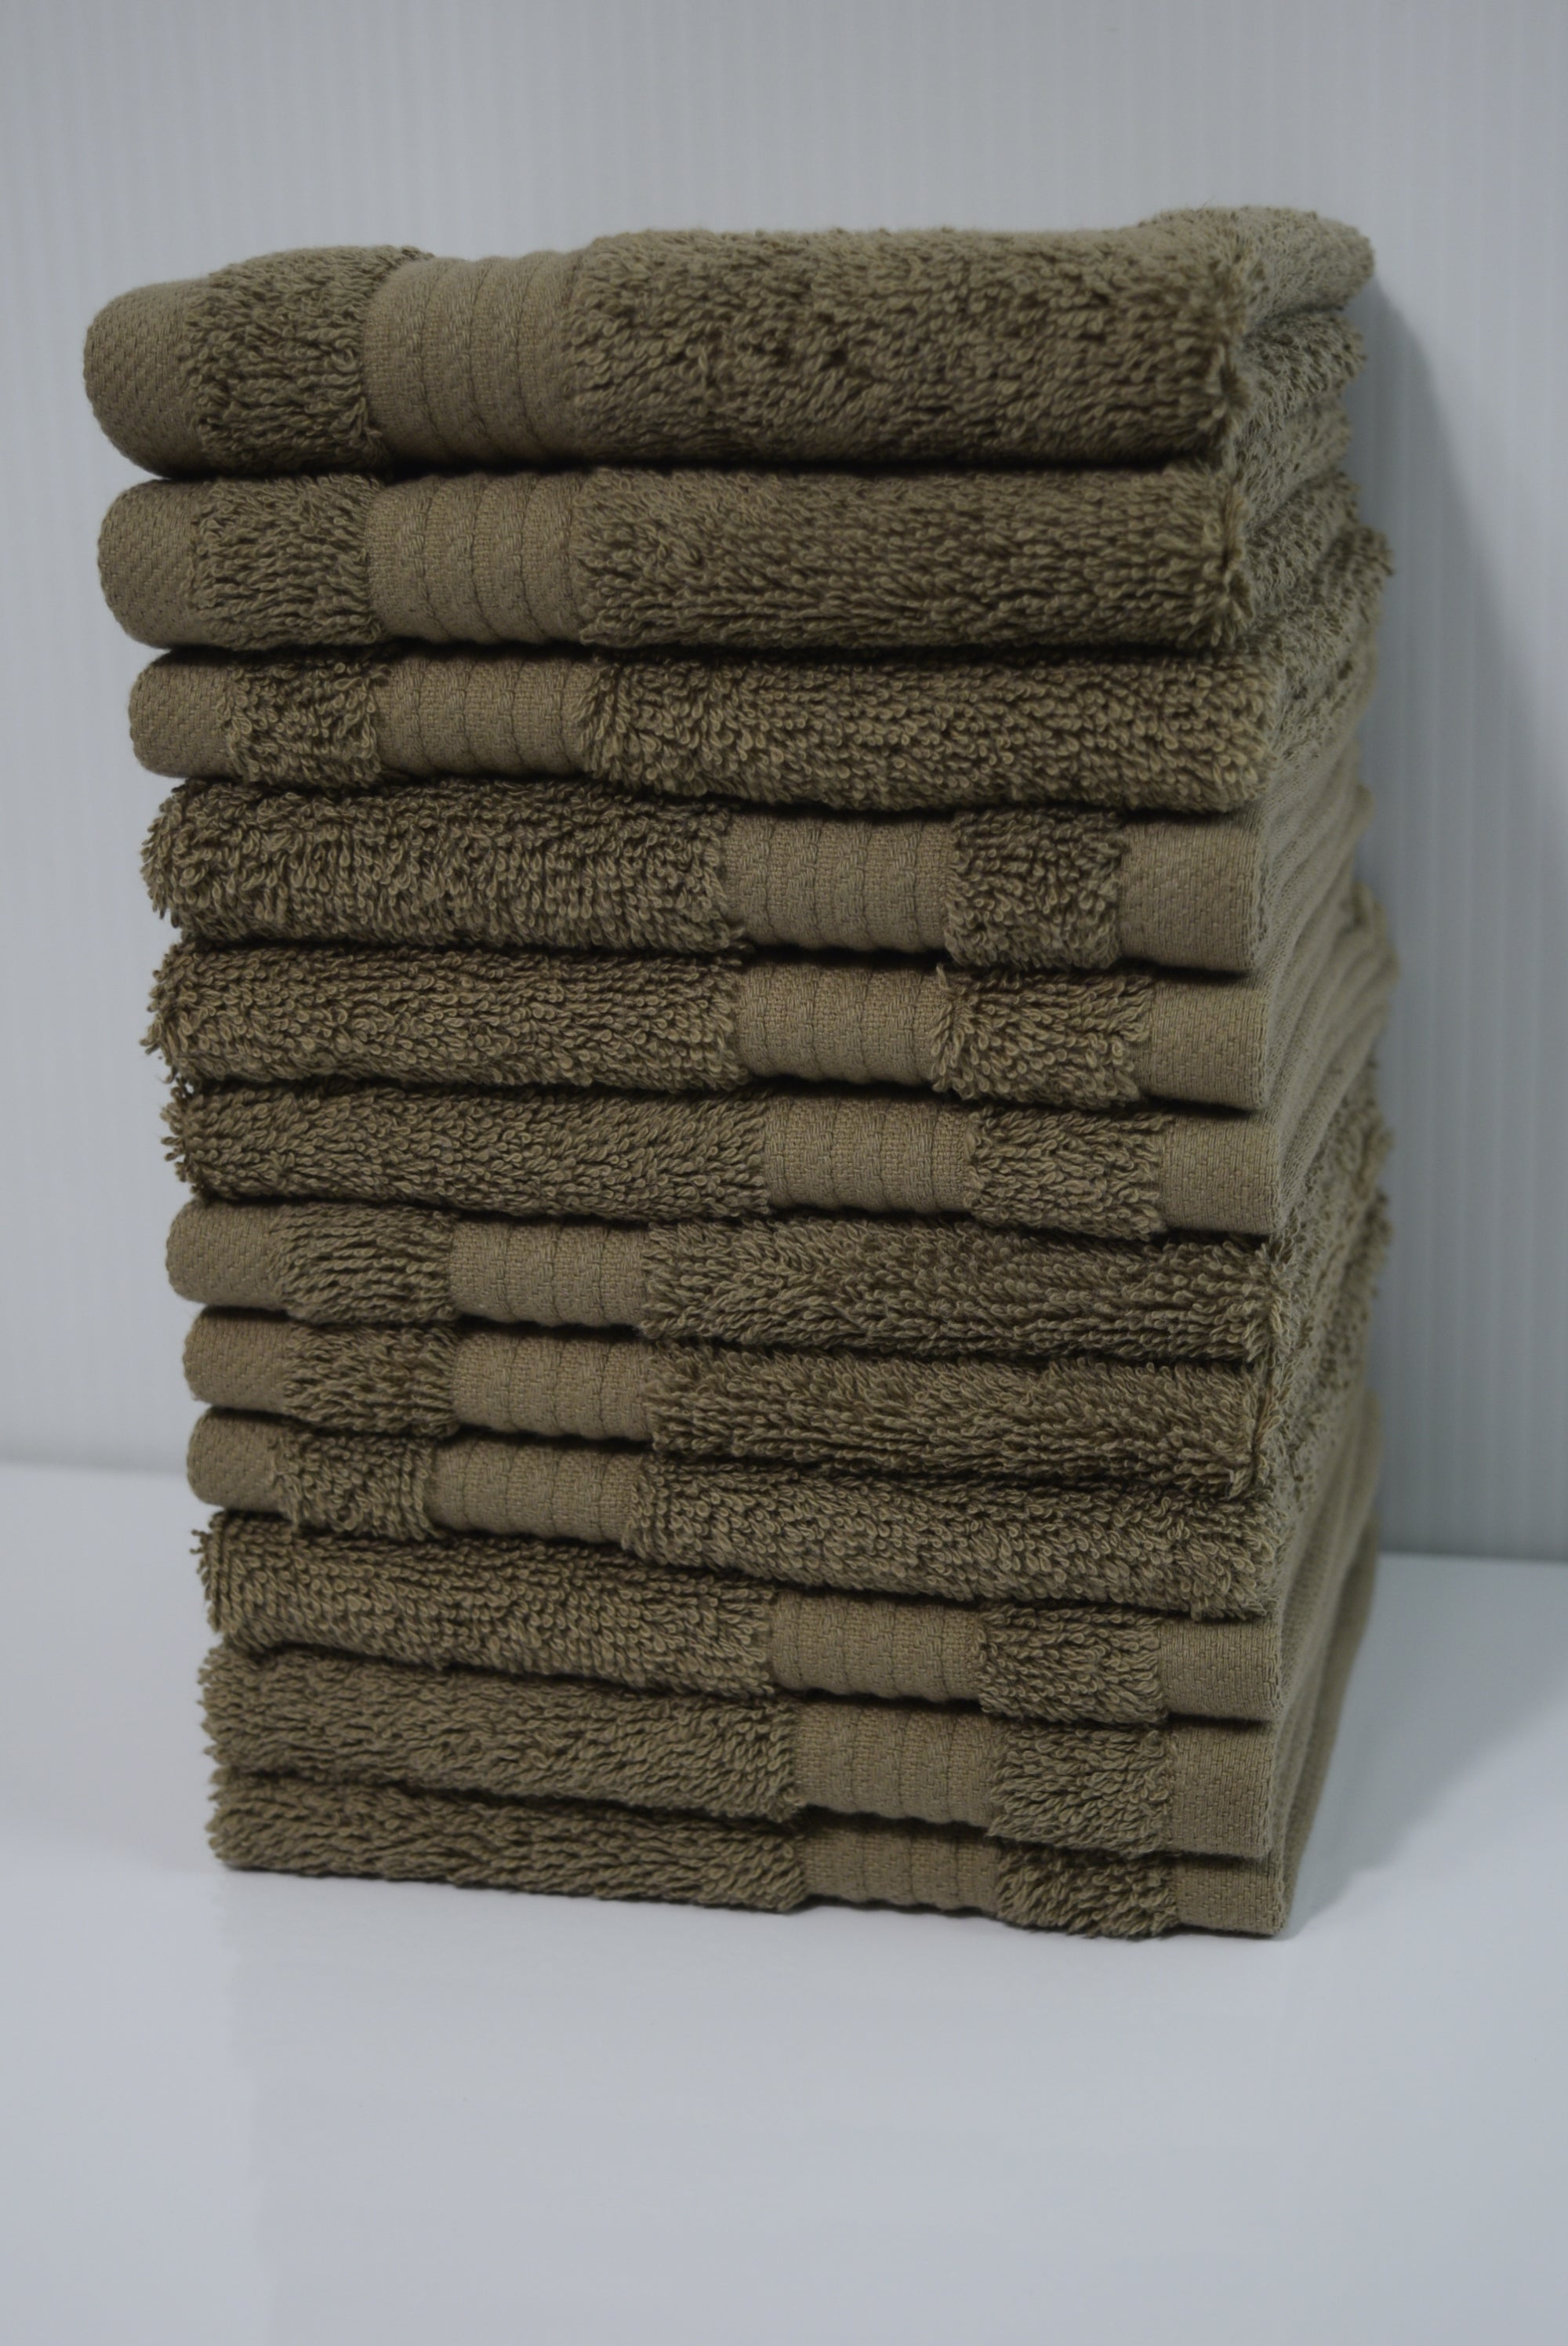 Amadeus Turkish Cotton Washcloths - 312 Pieces